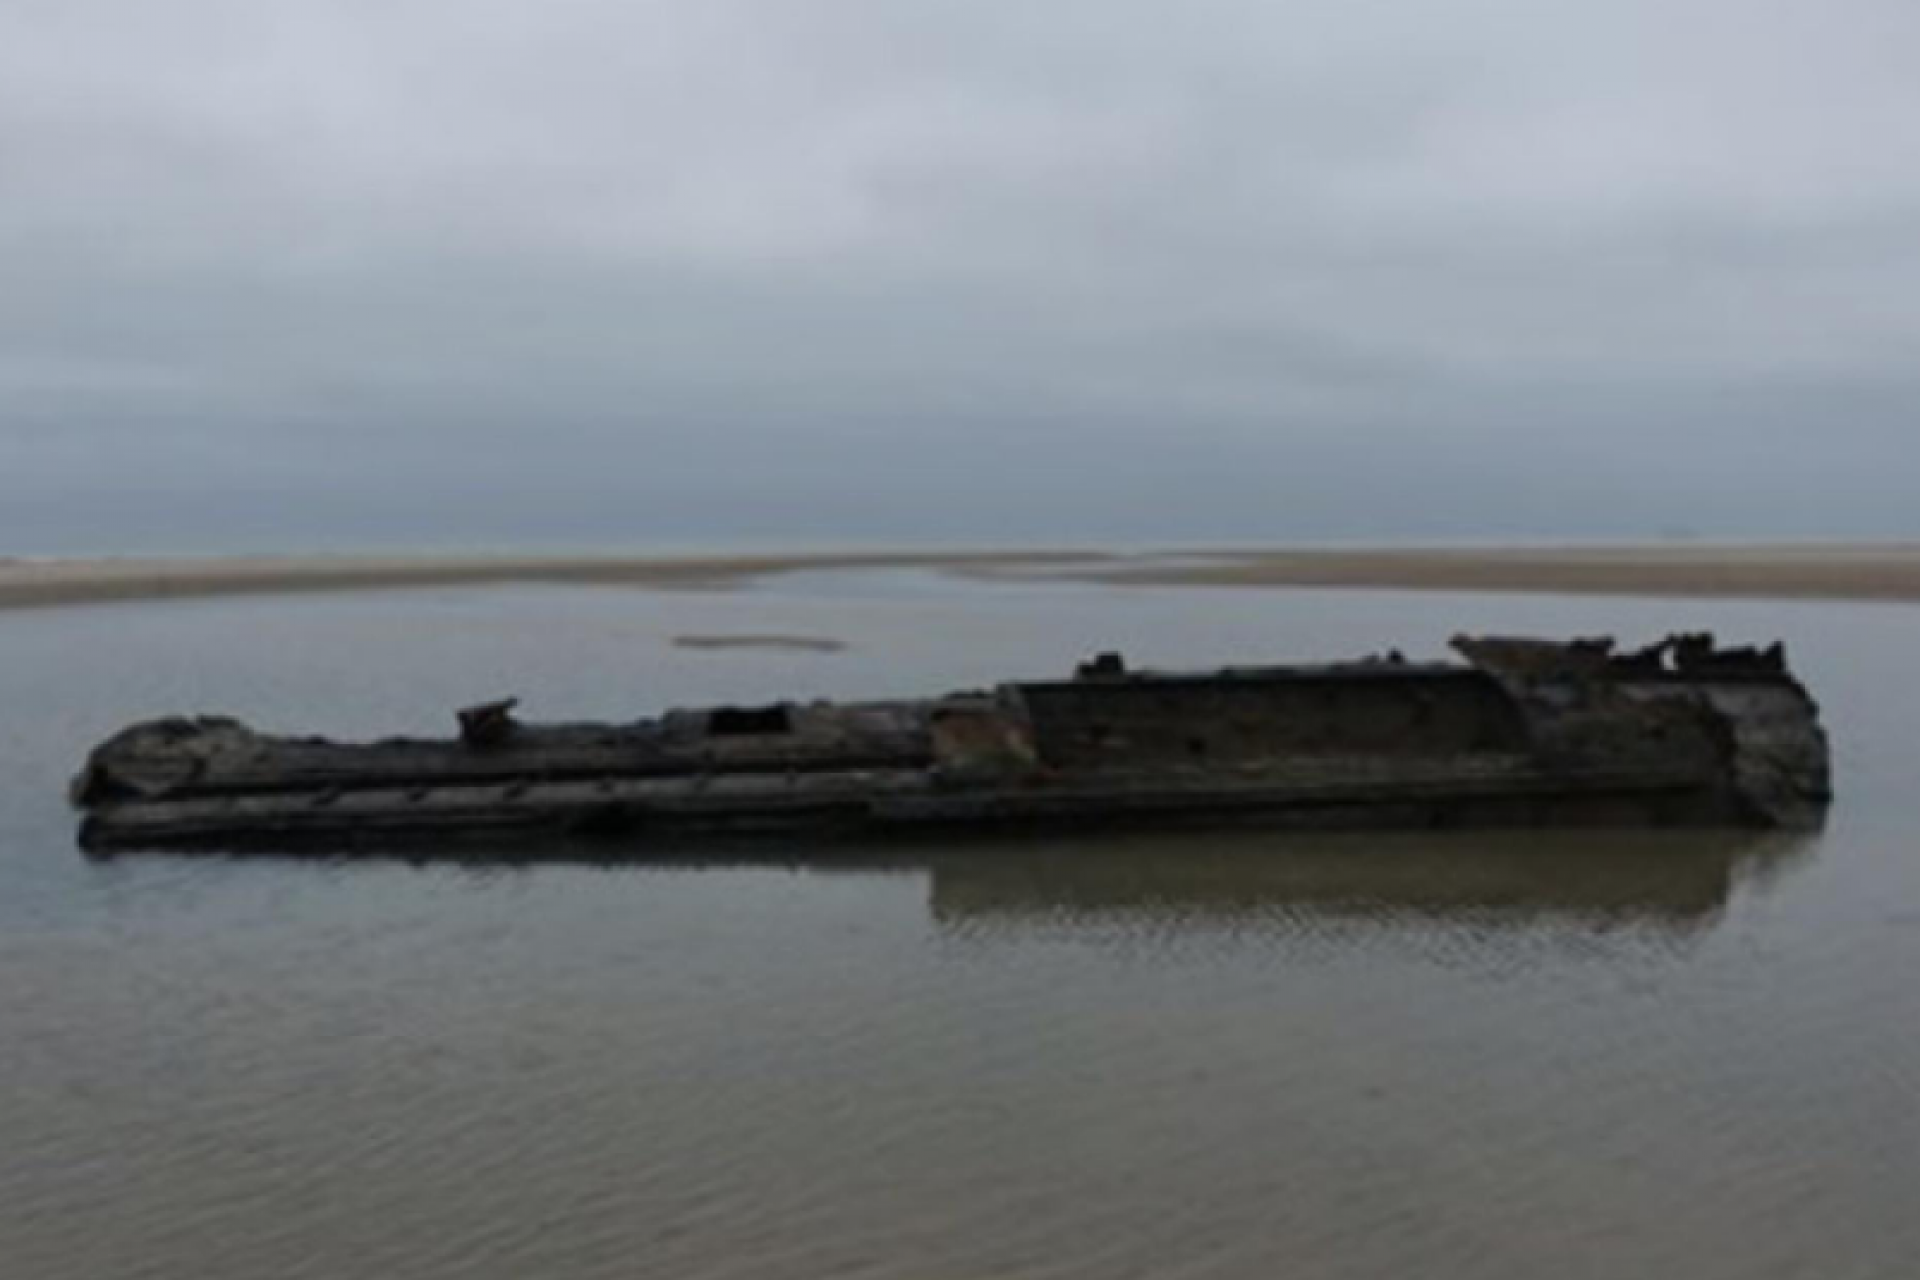 A German submarine from the time of the First World War arrived at the French beach.